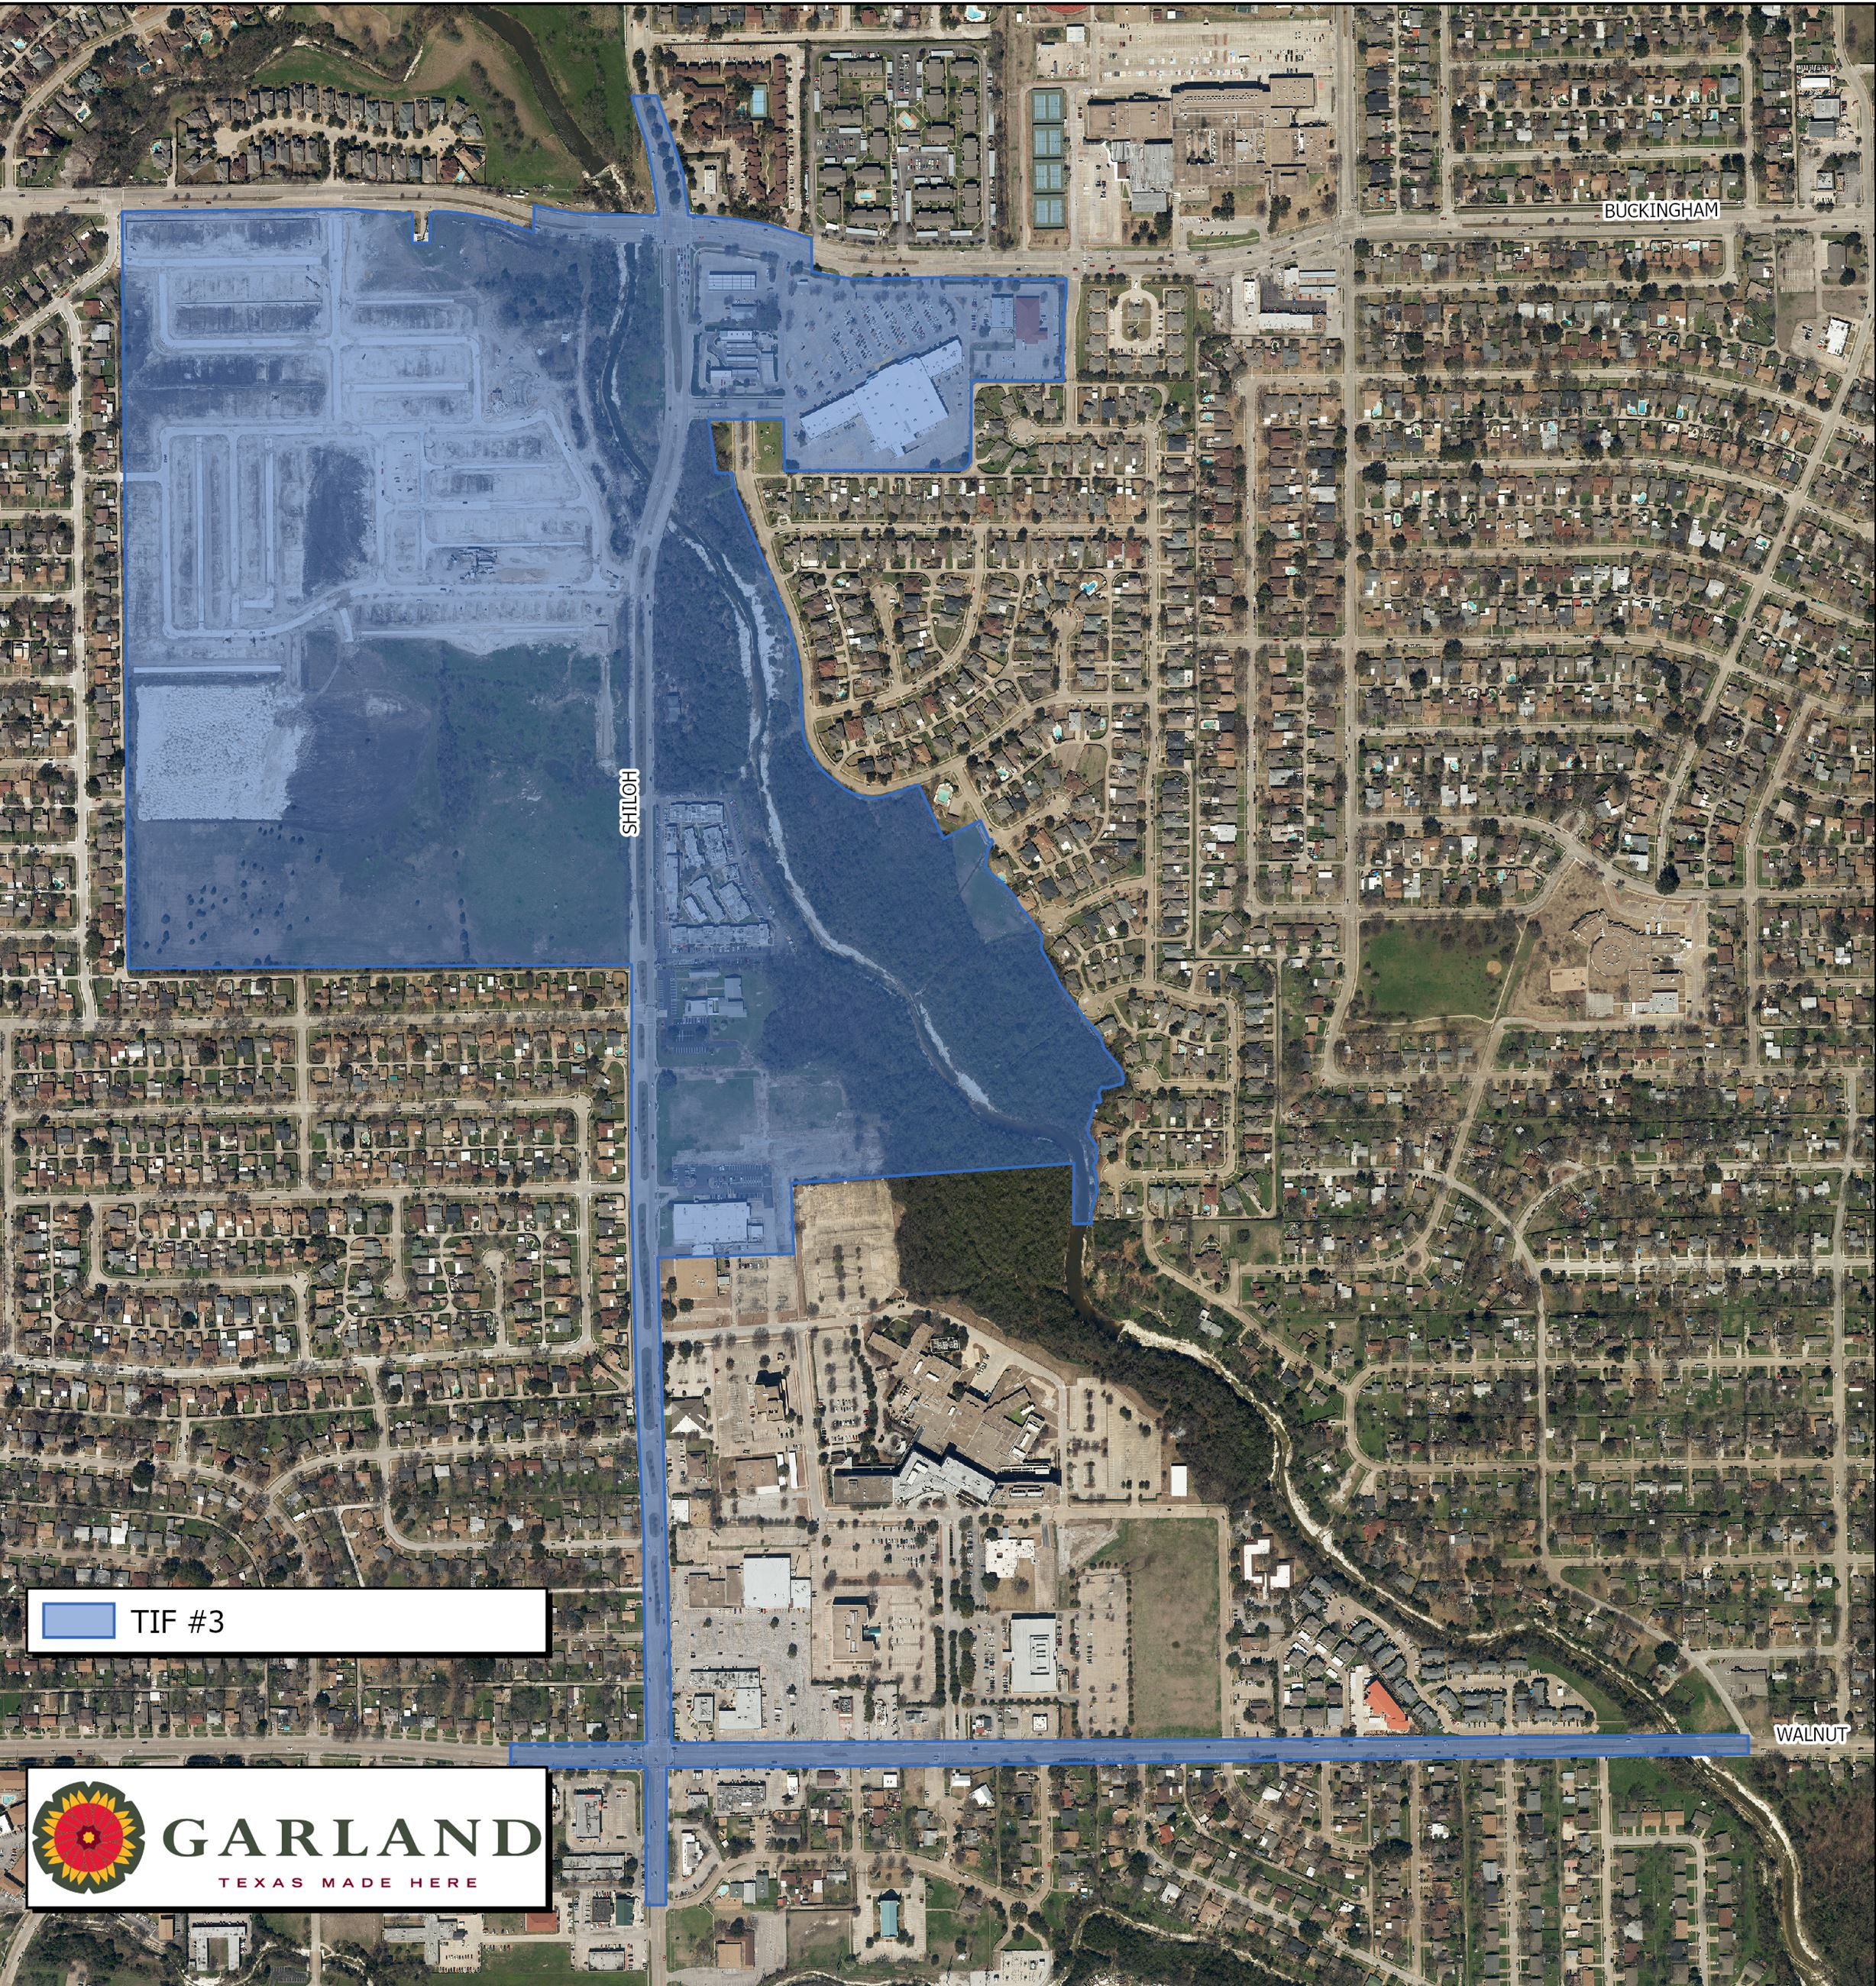 map of TIF 3 district in Garland